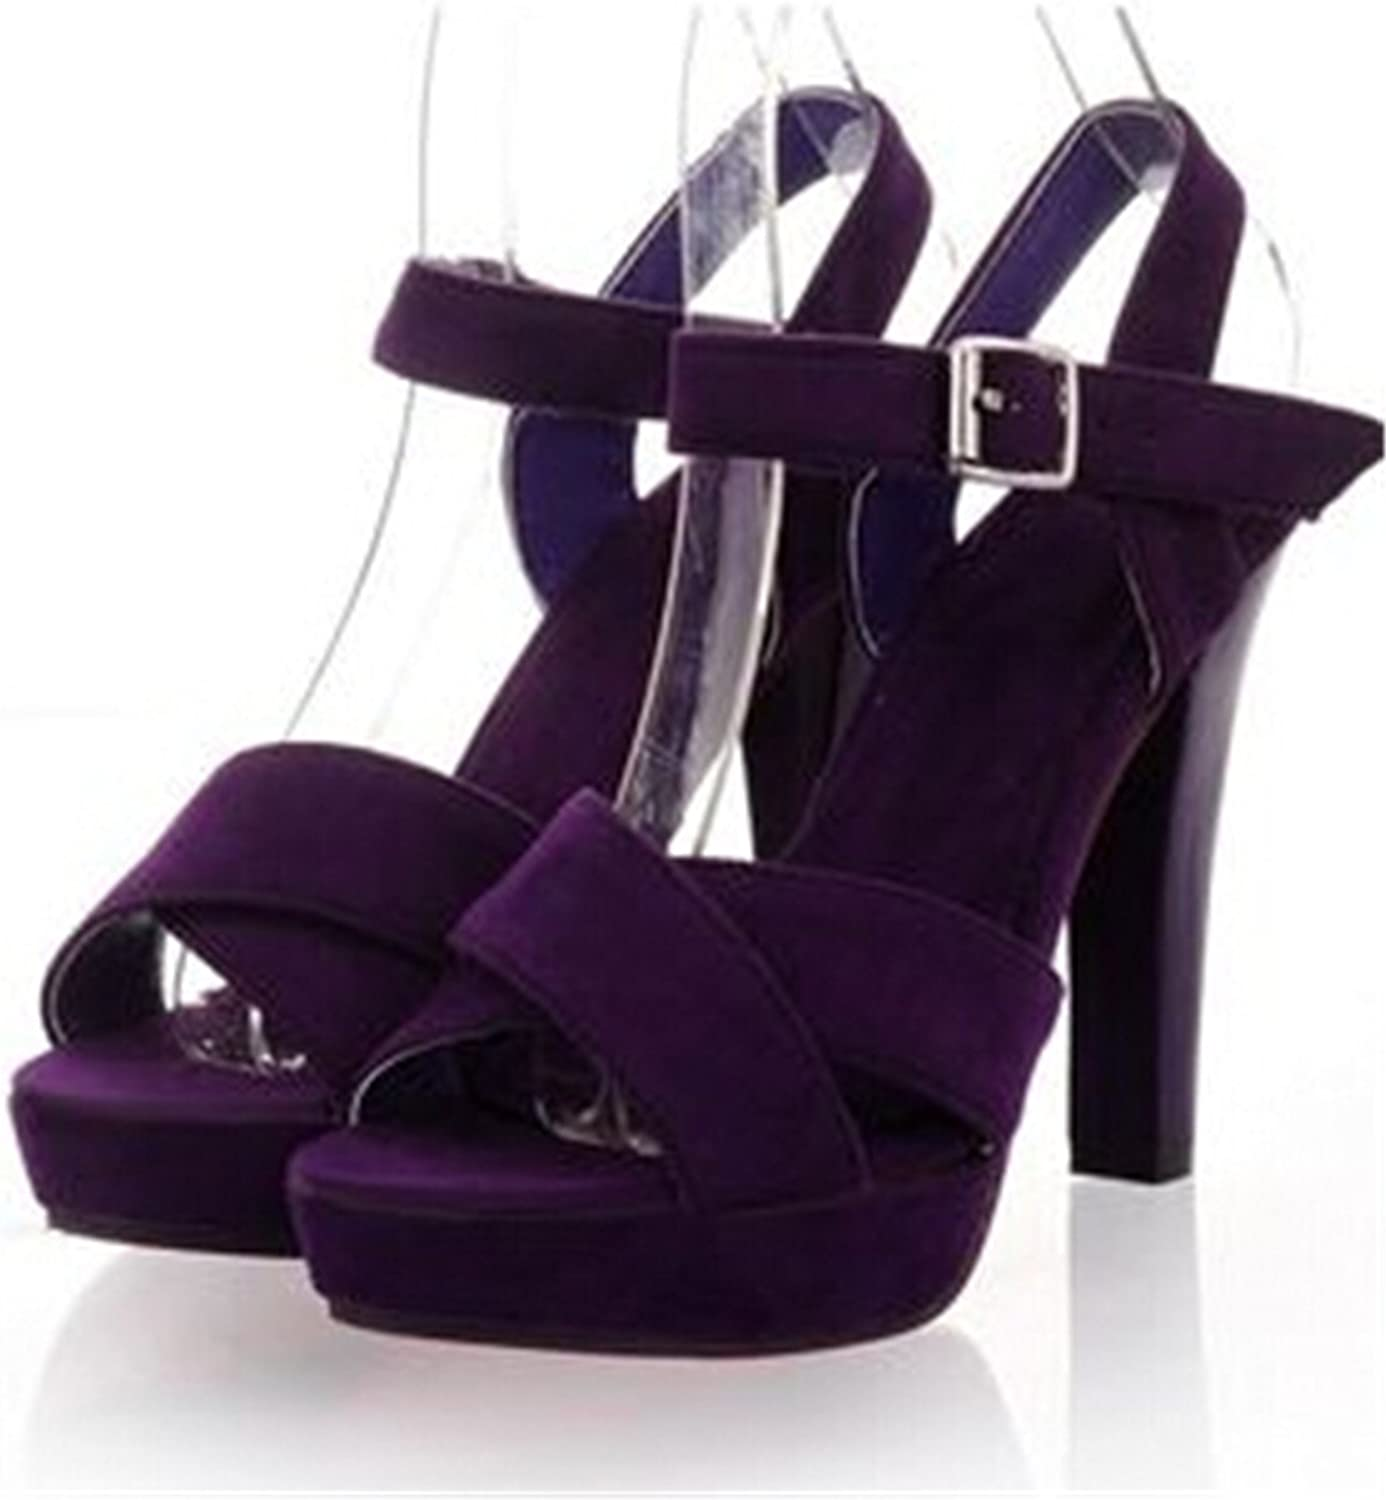 Ladiamonddiva Sandals Pumps high Heel Sandals Fashion Women Dress Sexy shoes Slippers EUR Size 34-43 Purple 12